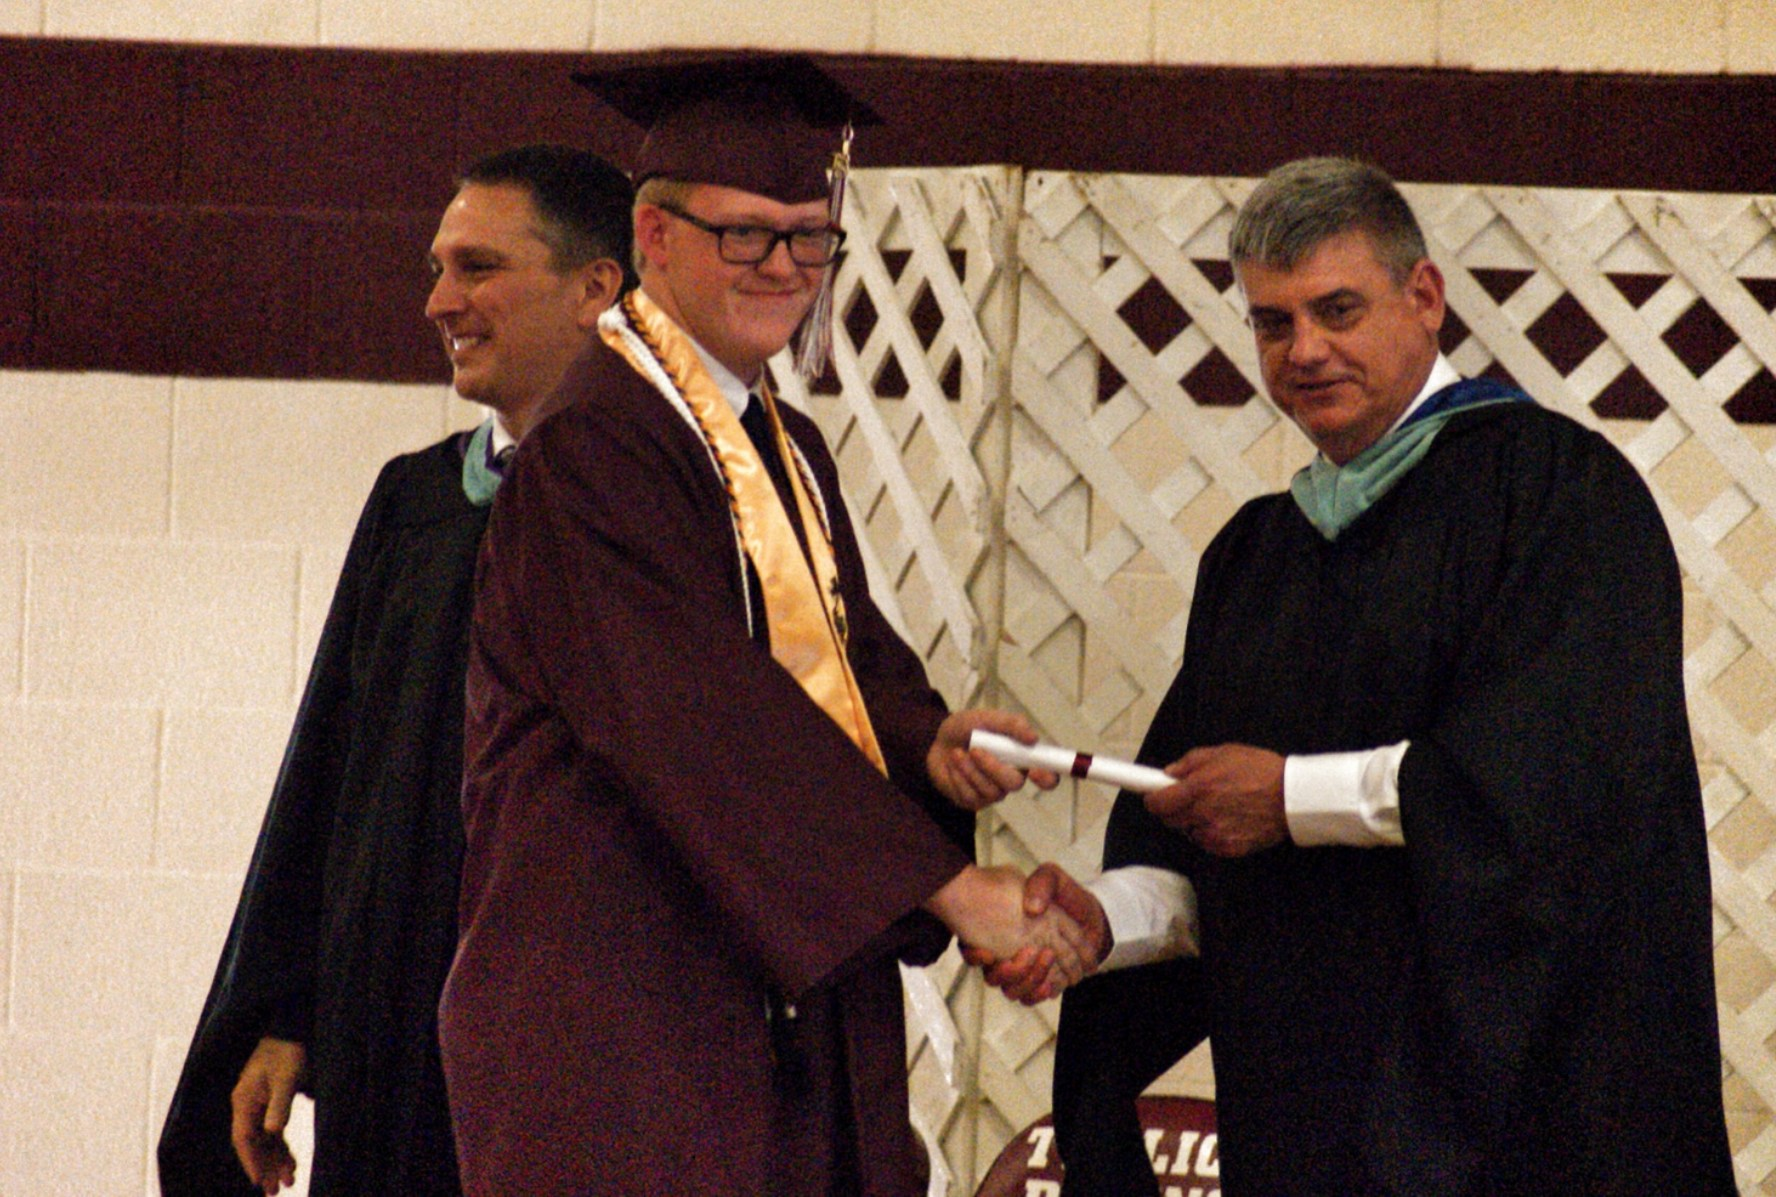 Senior accepts diploma from Director Tim Blankenship.